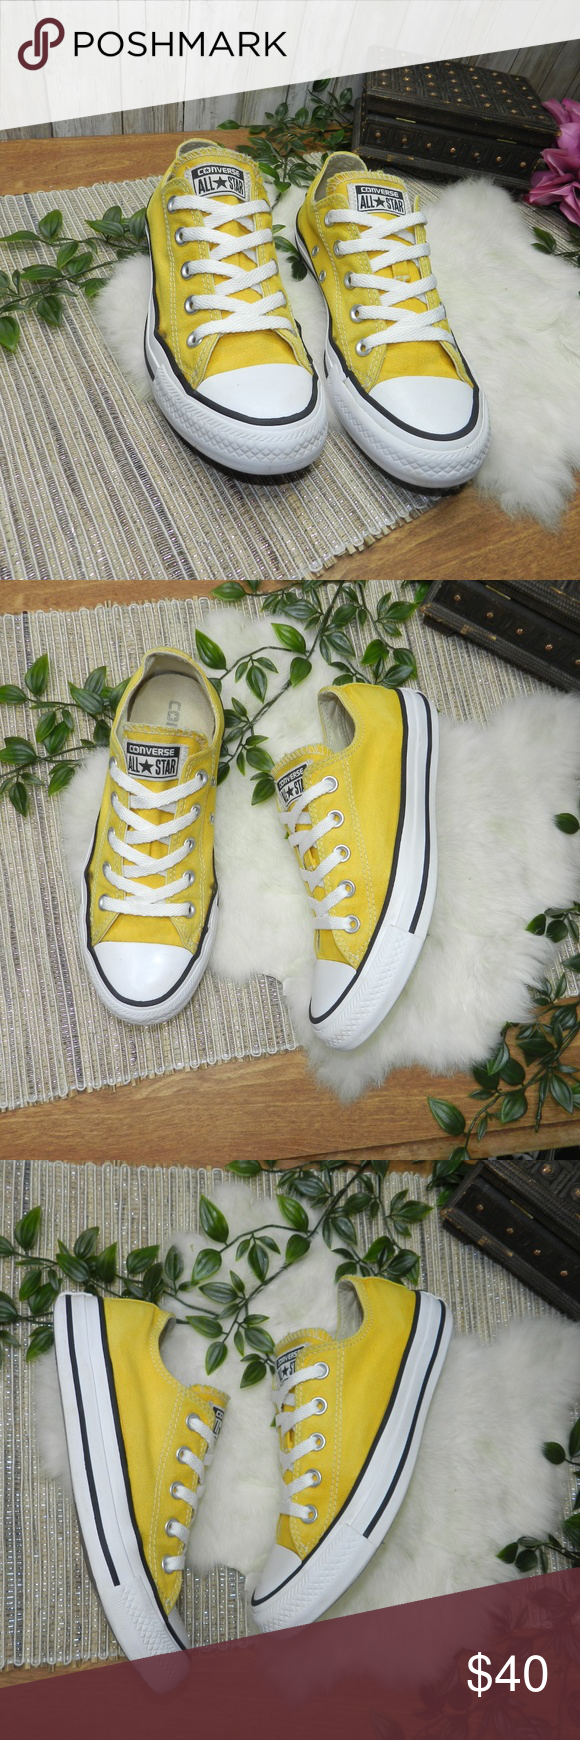 Yellow sneakers, Converse chuck taylor